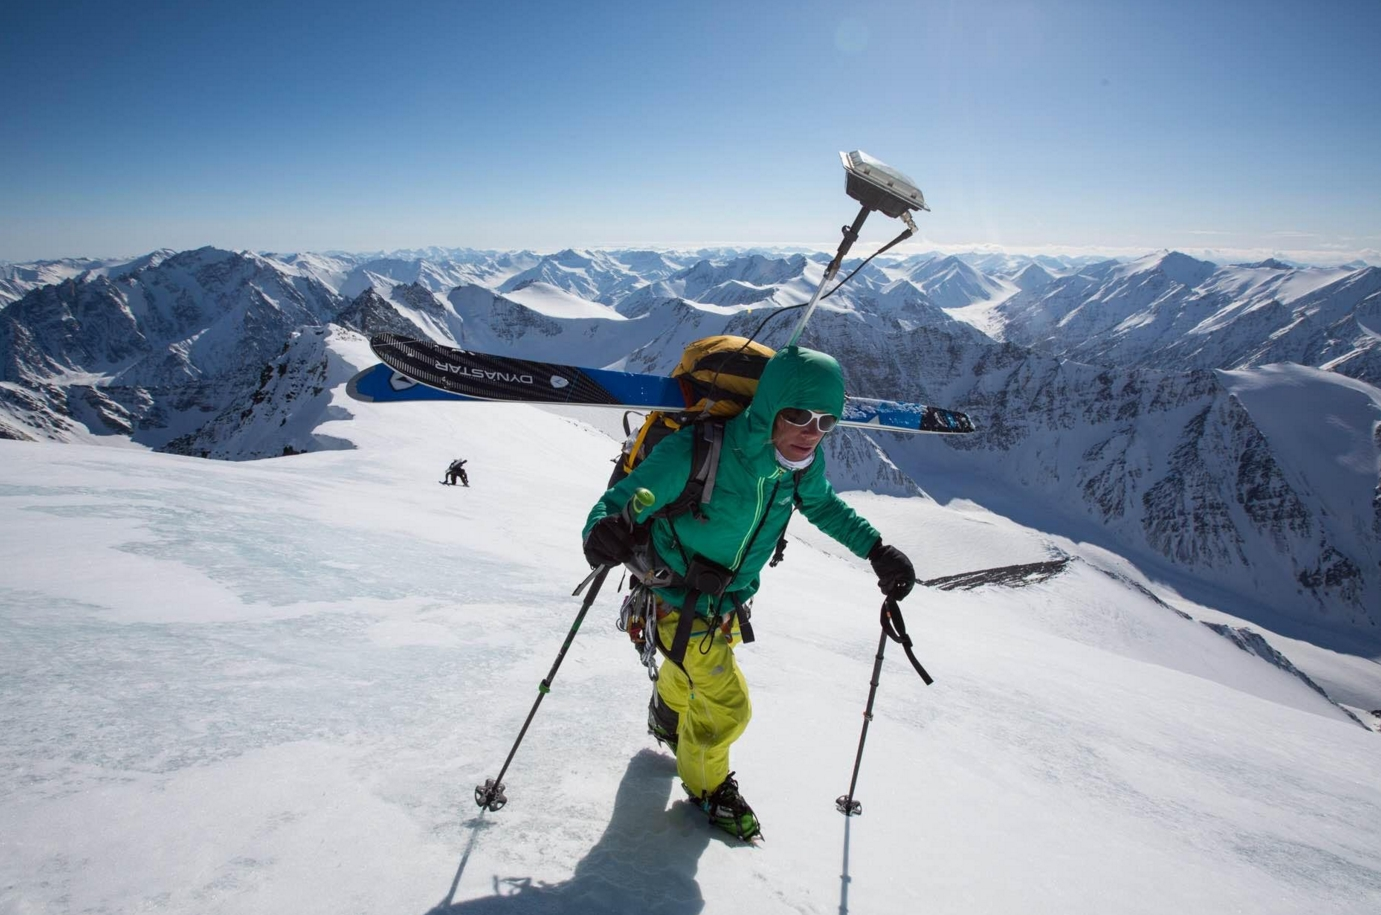 Kit Deslauriers, the only person to climb and ski down the tallest mountains on seven continents, ascends the highest peak in the Brooks Range, Mount Isto, in 2014. Photo by Andy Bardon.